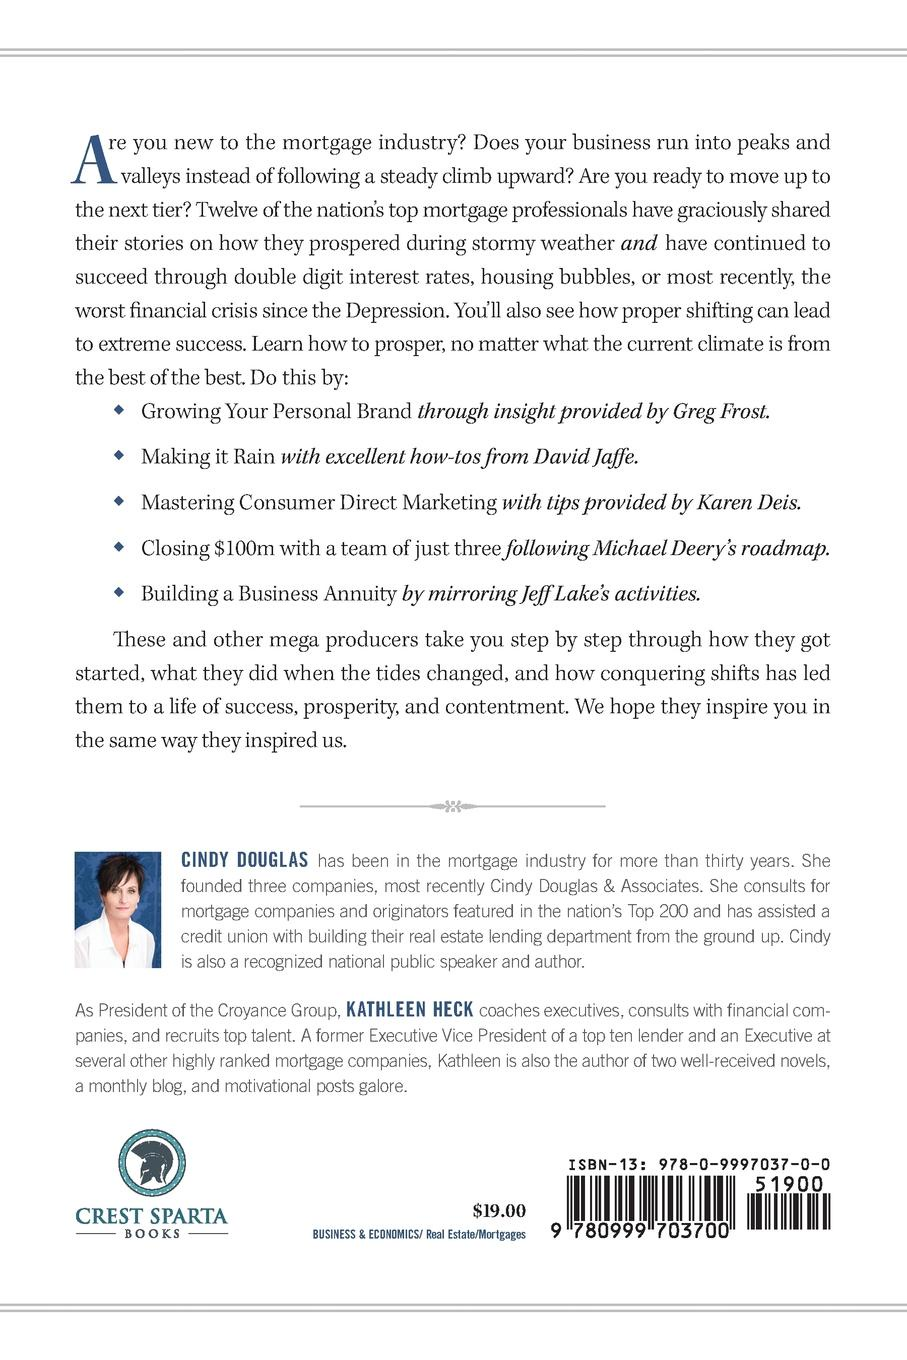 Cindy Douglas, Kathleen Heck Conquering Shifts. Insights from Top Mortgage Sales Professionals richard giannamore the high income mortgage originator sales strategies and practices to build your client base and become a top producer